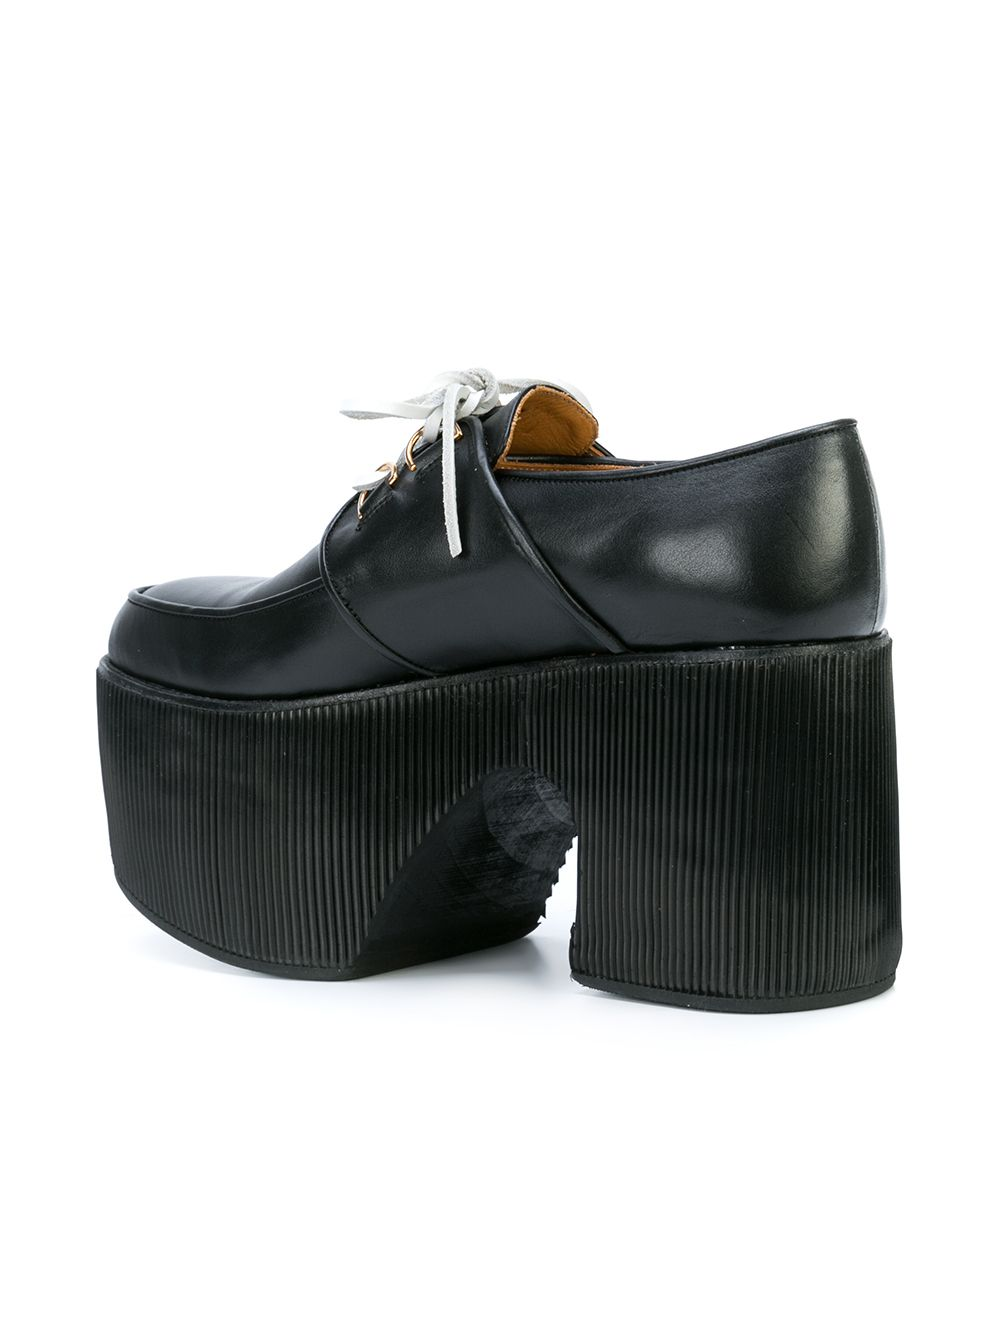 Charles Jeffrey Loverboy Black Death Drop Creepers - 3